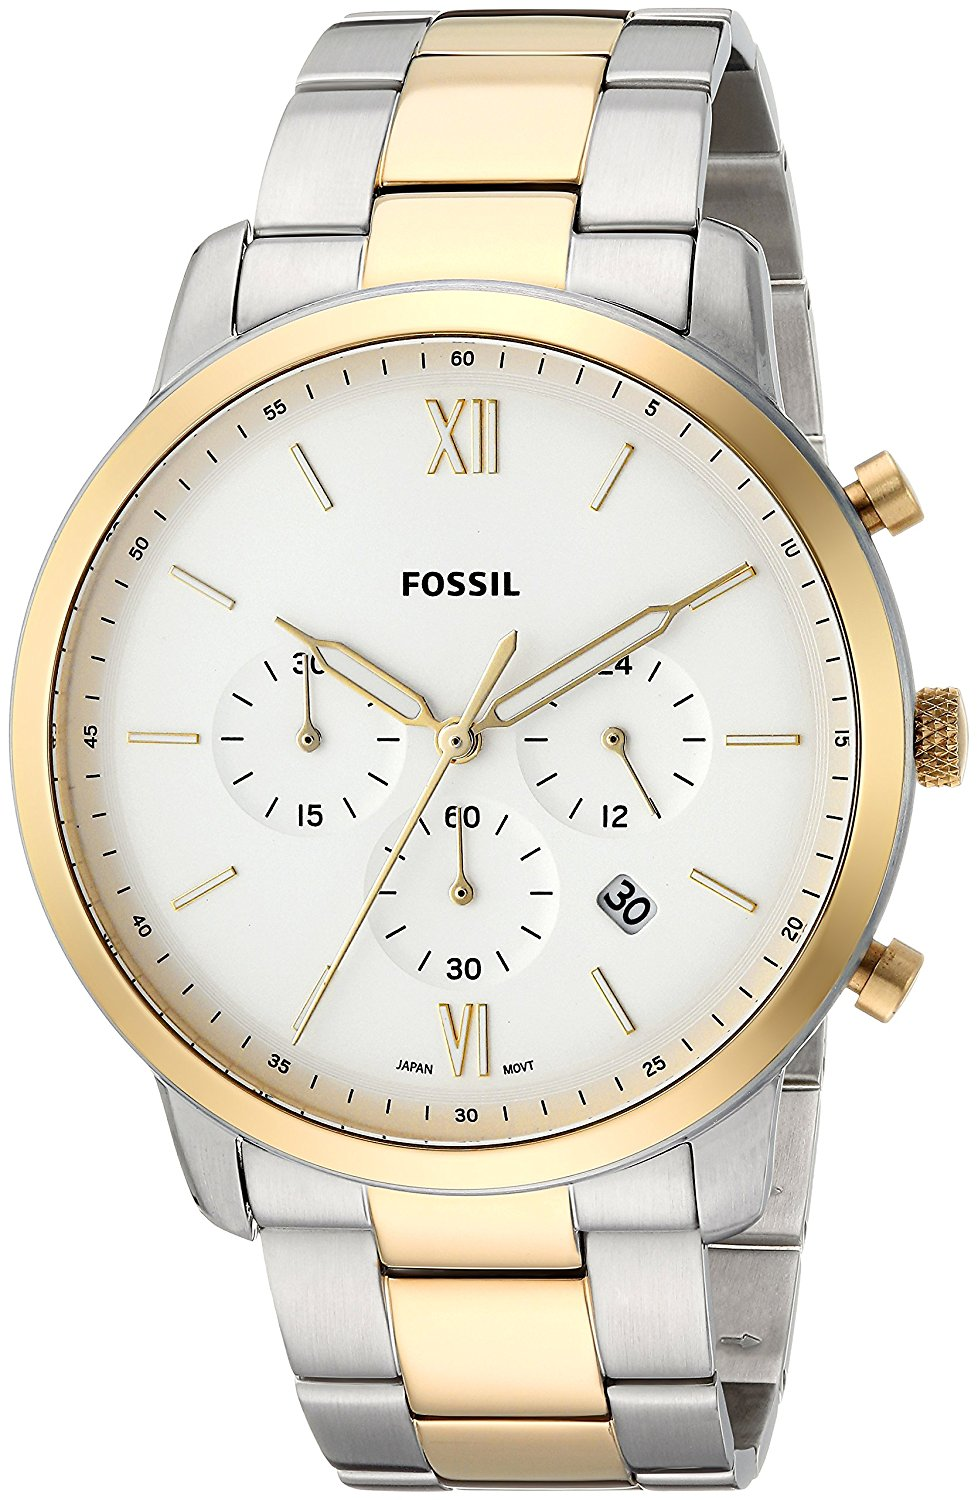 Fossil Men's Two-Tone Chronograph Watch